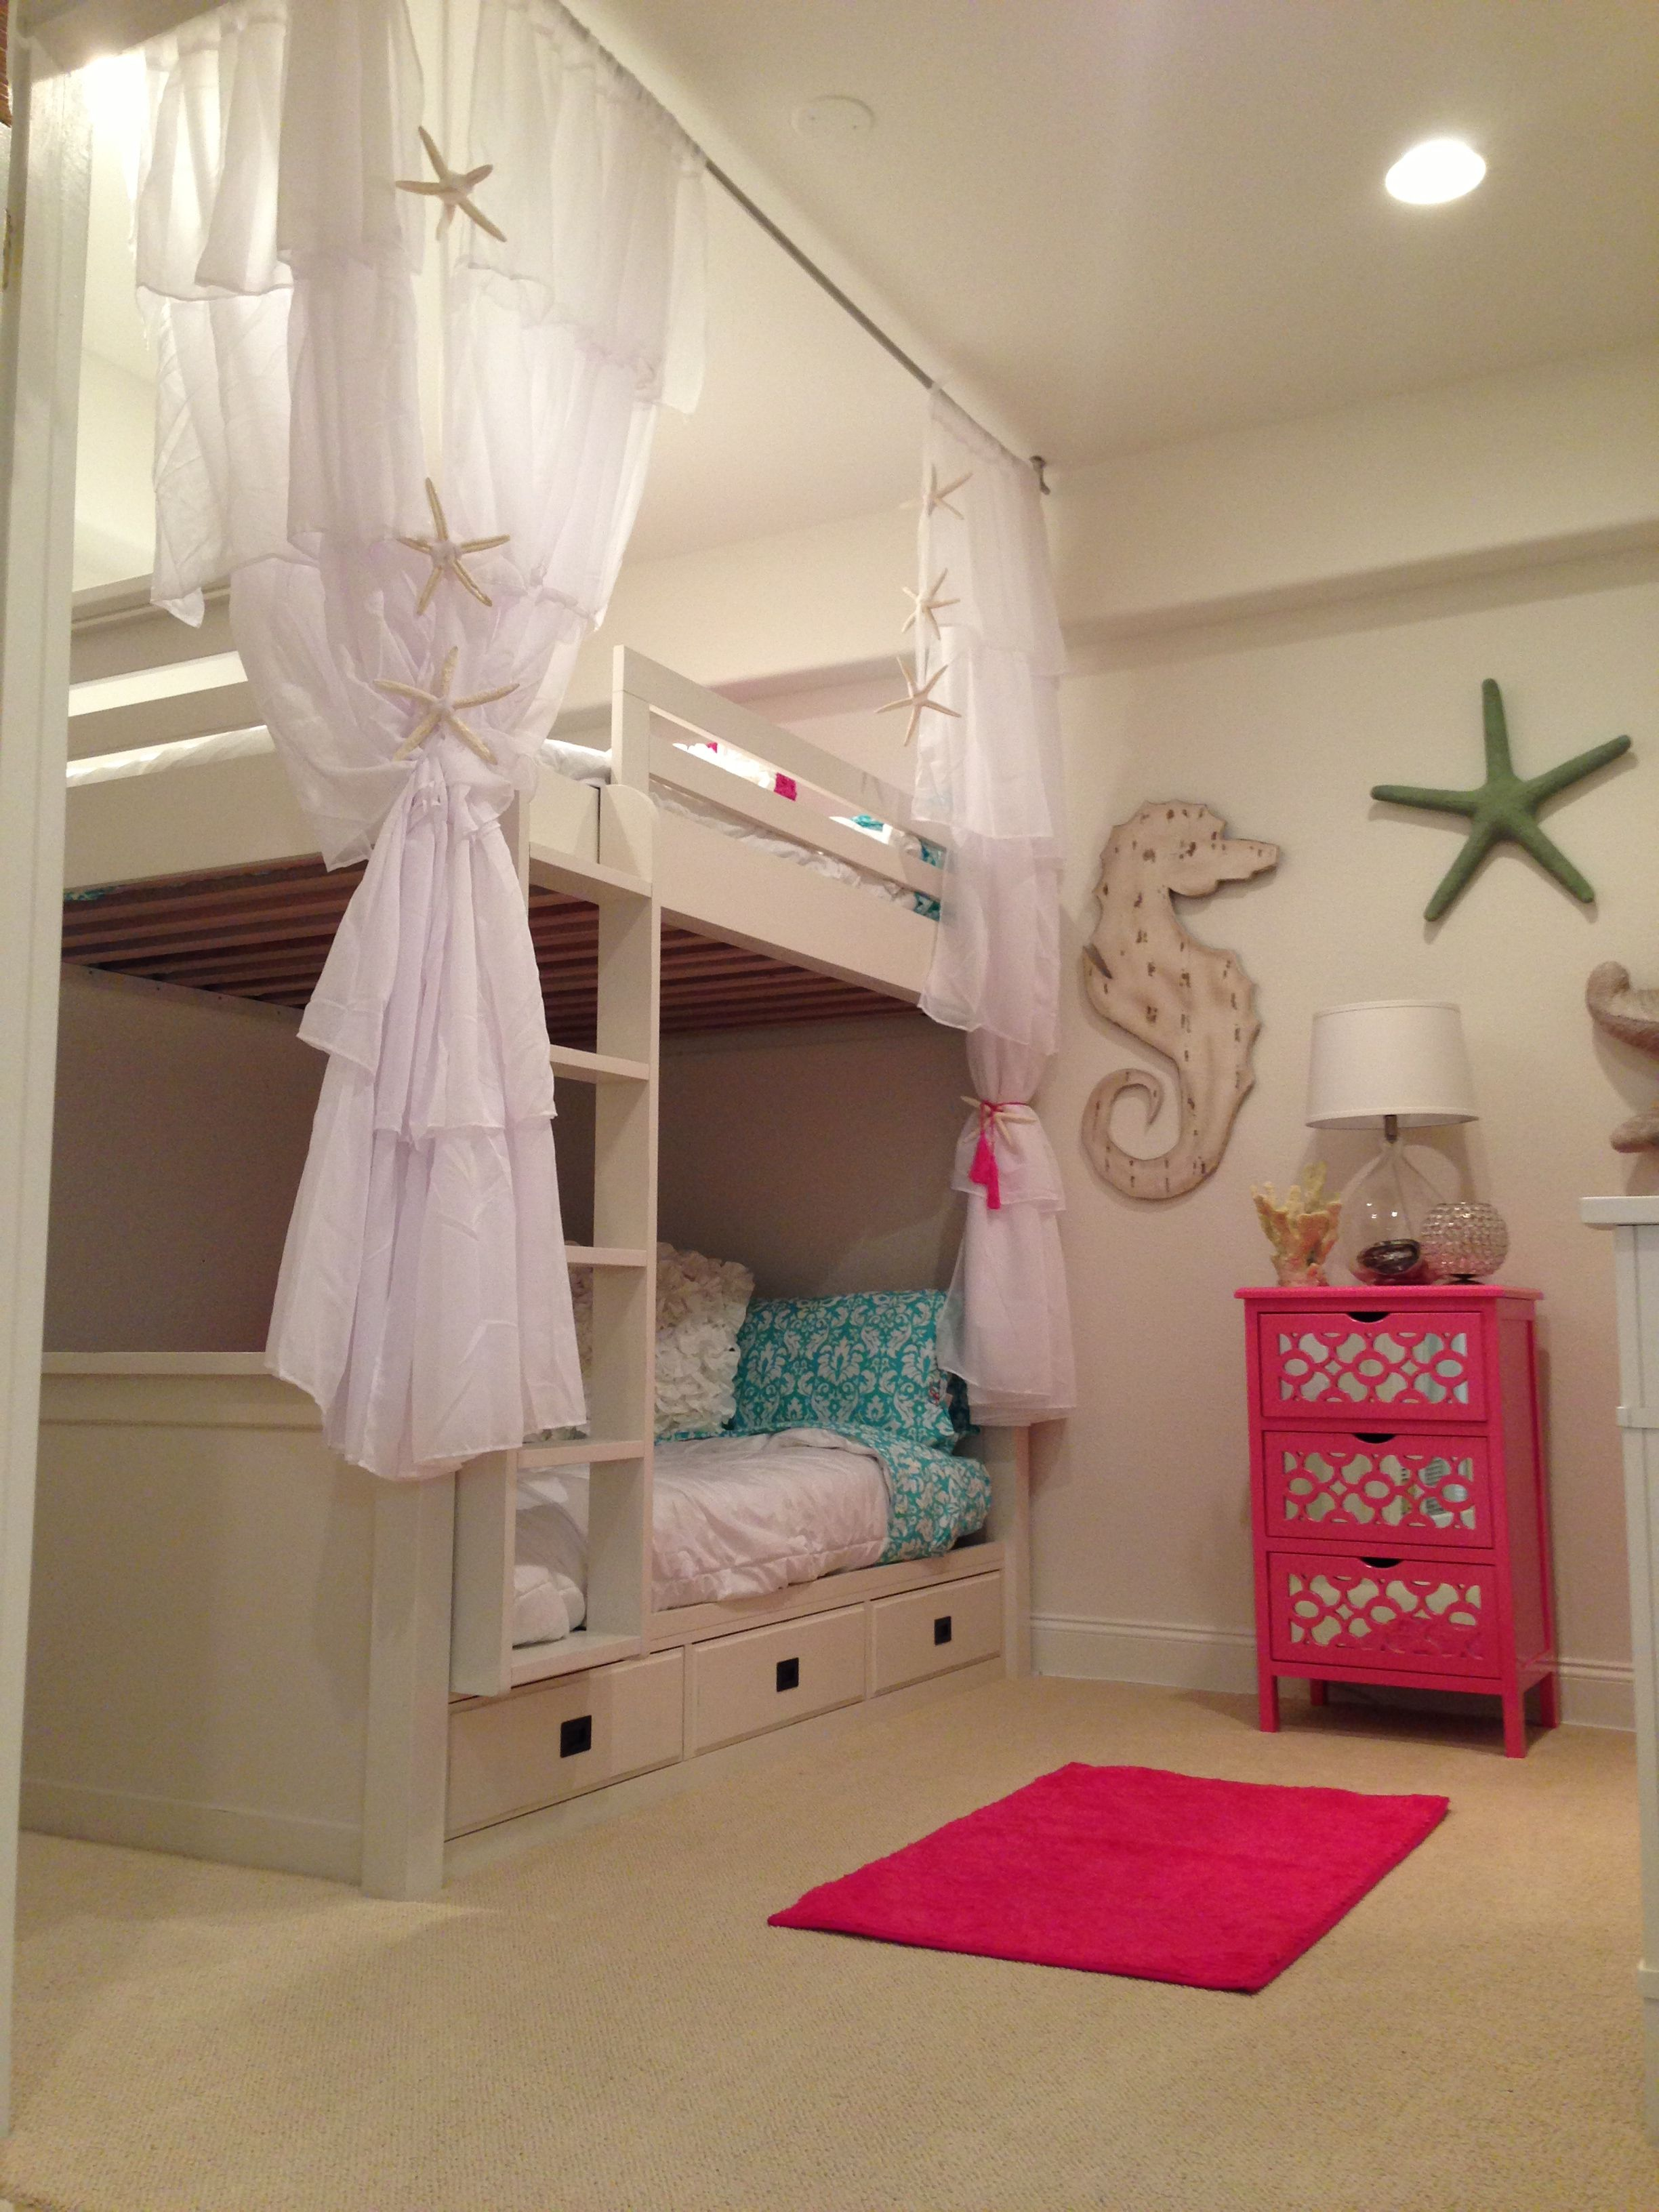 Girls beach bedroom for the home beach bedroom girls - Room themes for teenage girl ...